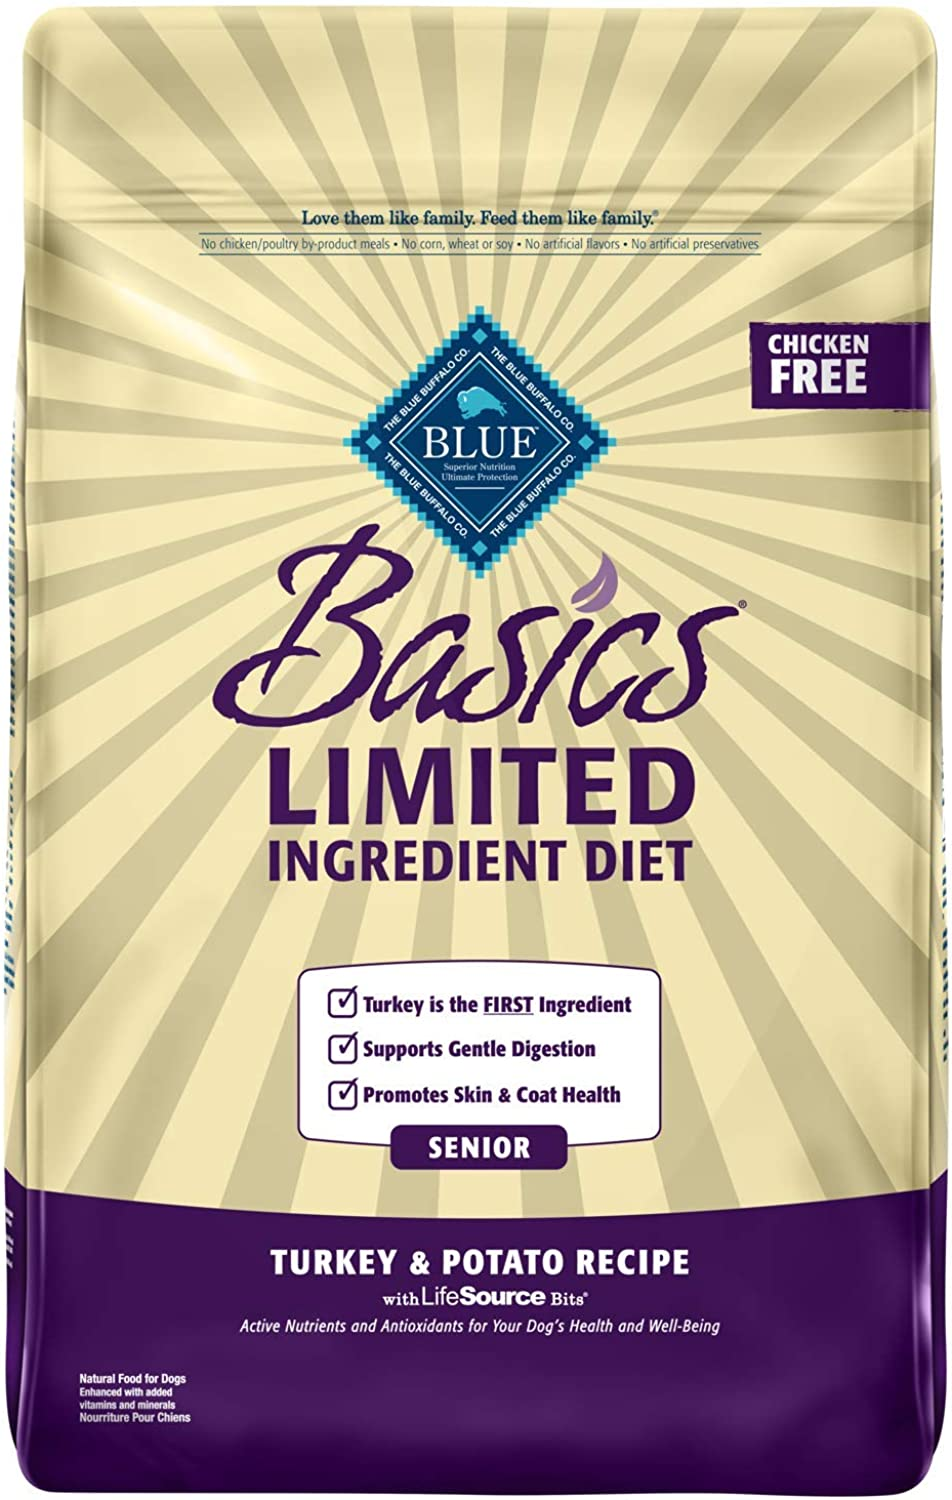 bluee Buffalo Basics Limited Ingredient Diet, Natural Senior Dry Dog Food, Turkey & Potato 24Lb